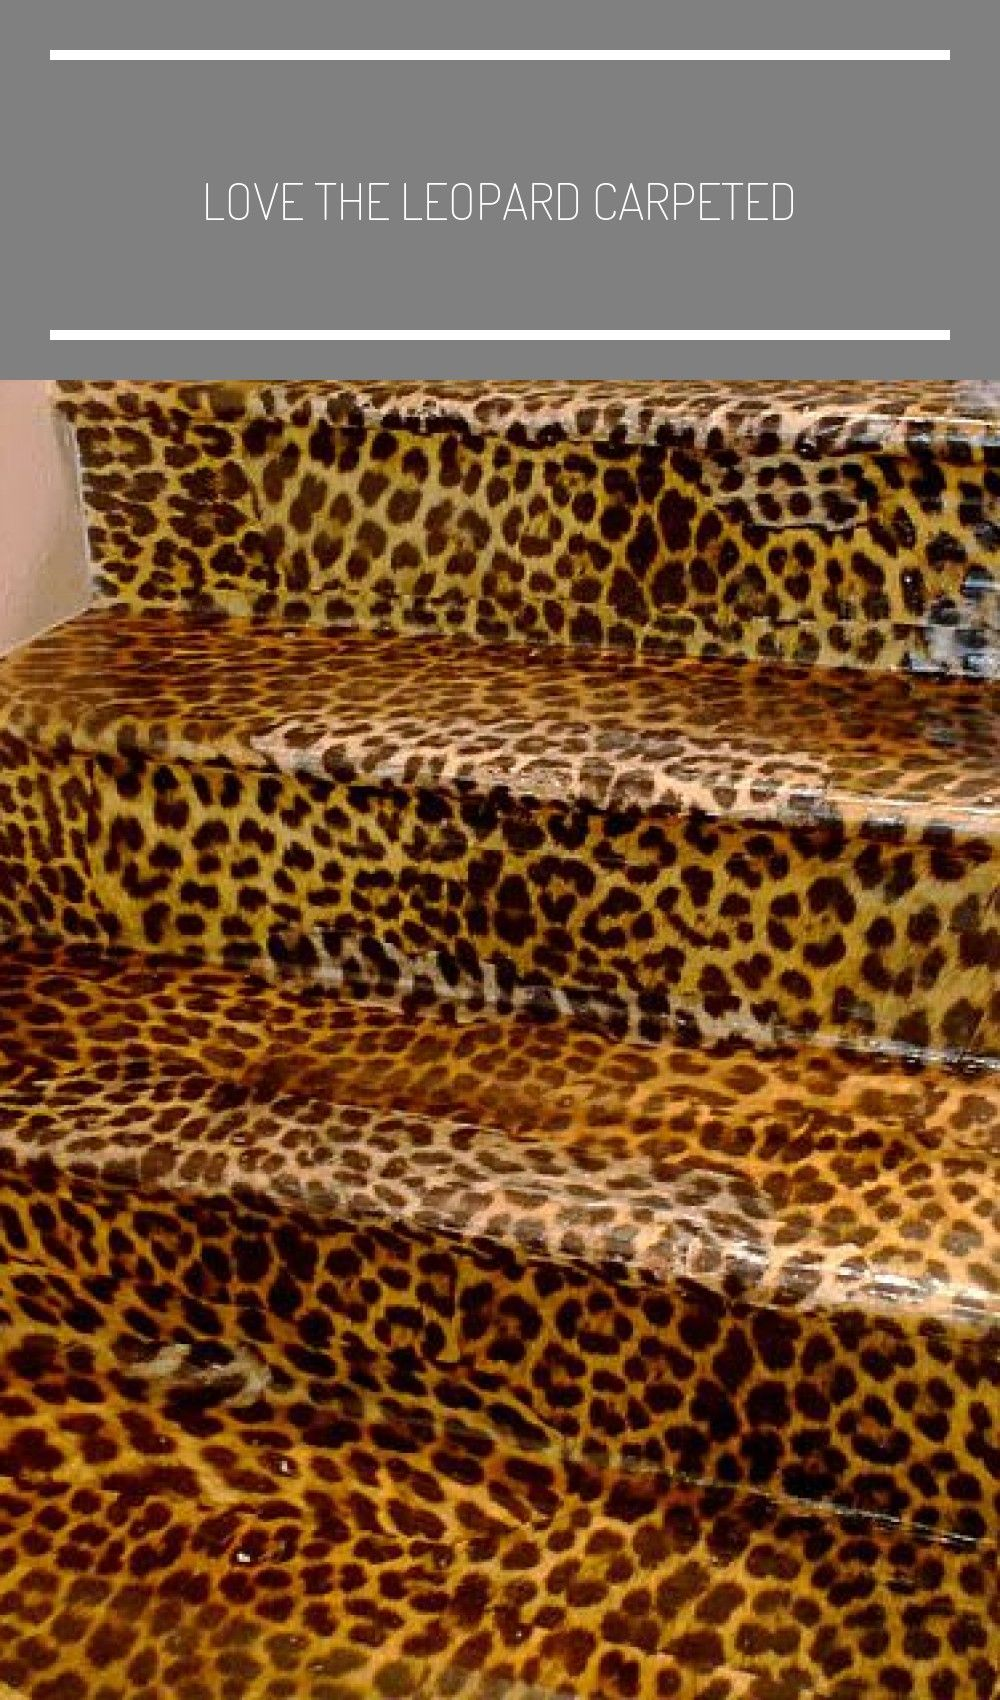 Best Love The Leopard Carpeted In 2020 Carpet Stairs Leopard 640 x 480